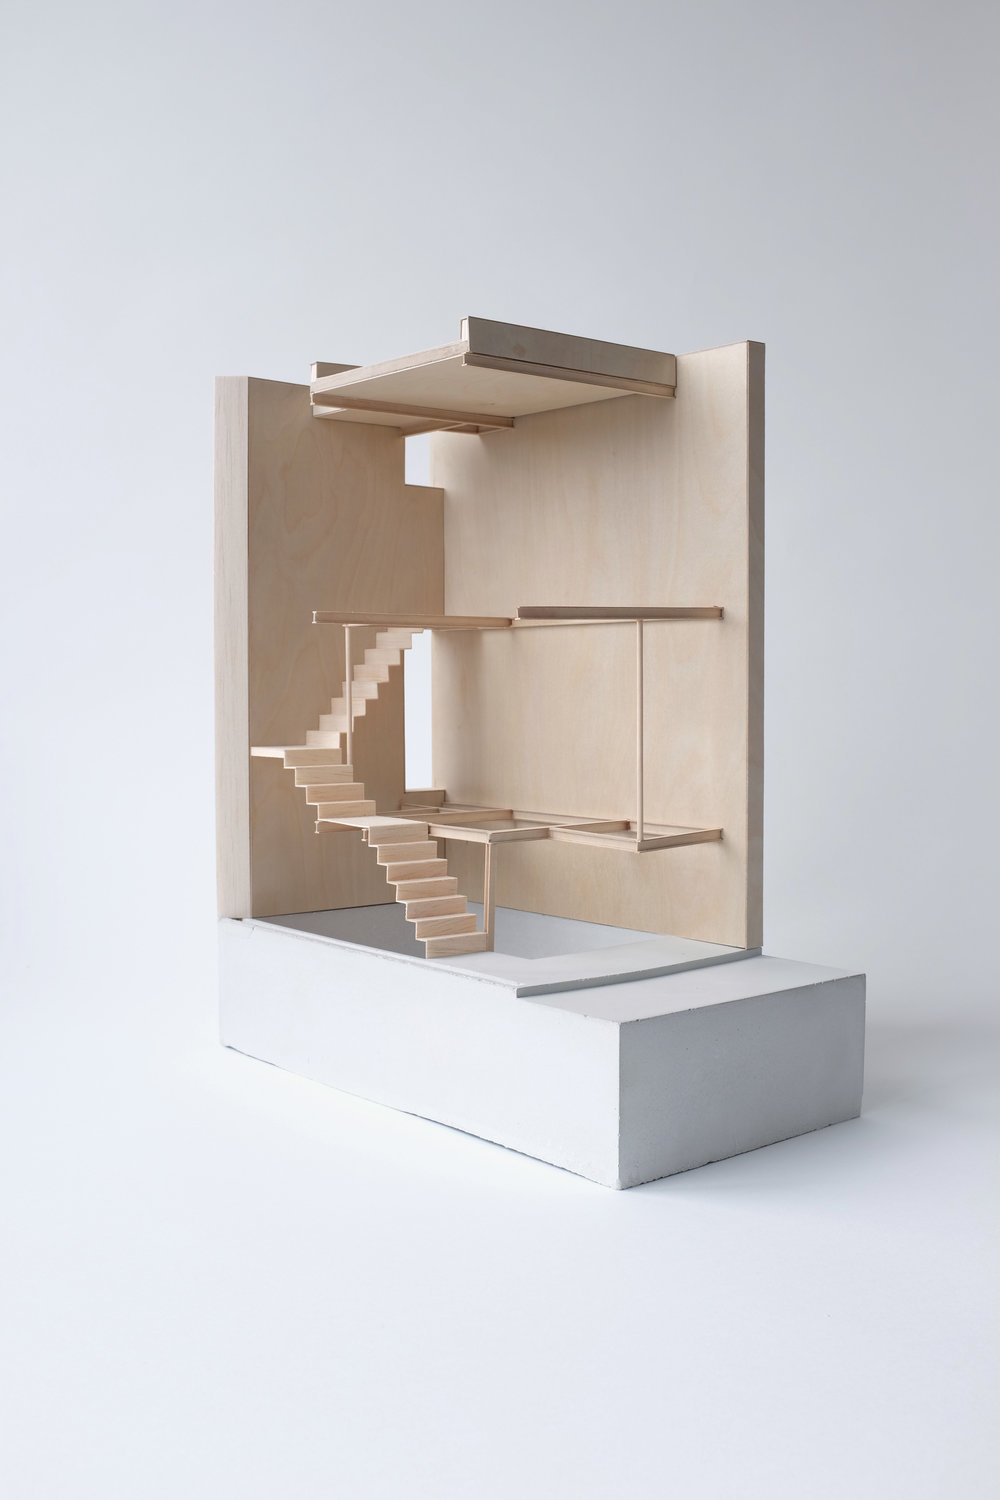 Model studies for  Small House